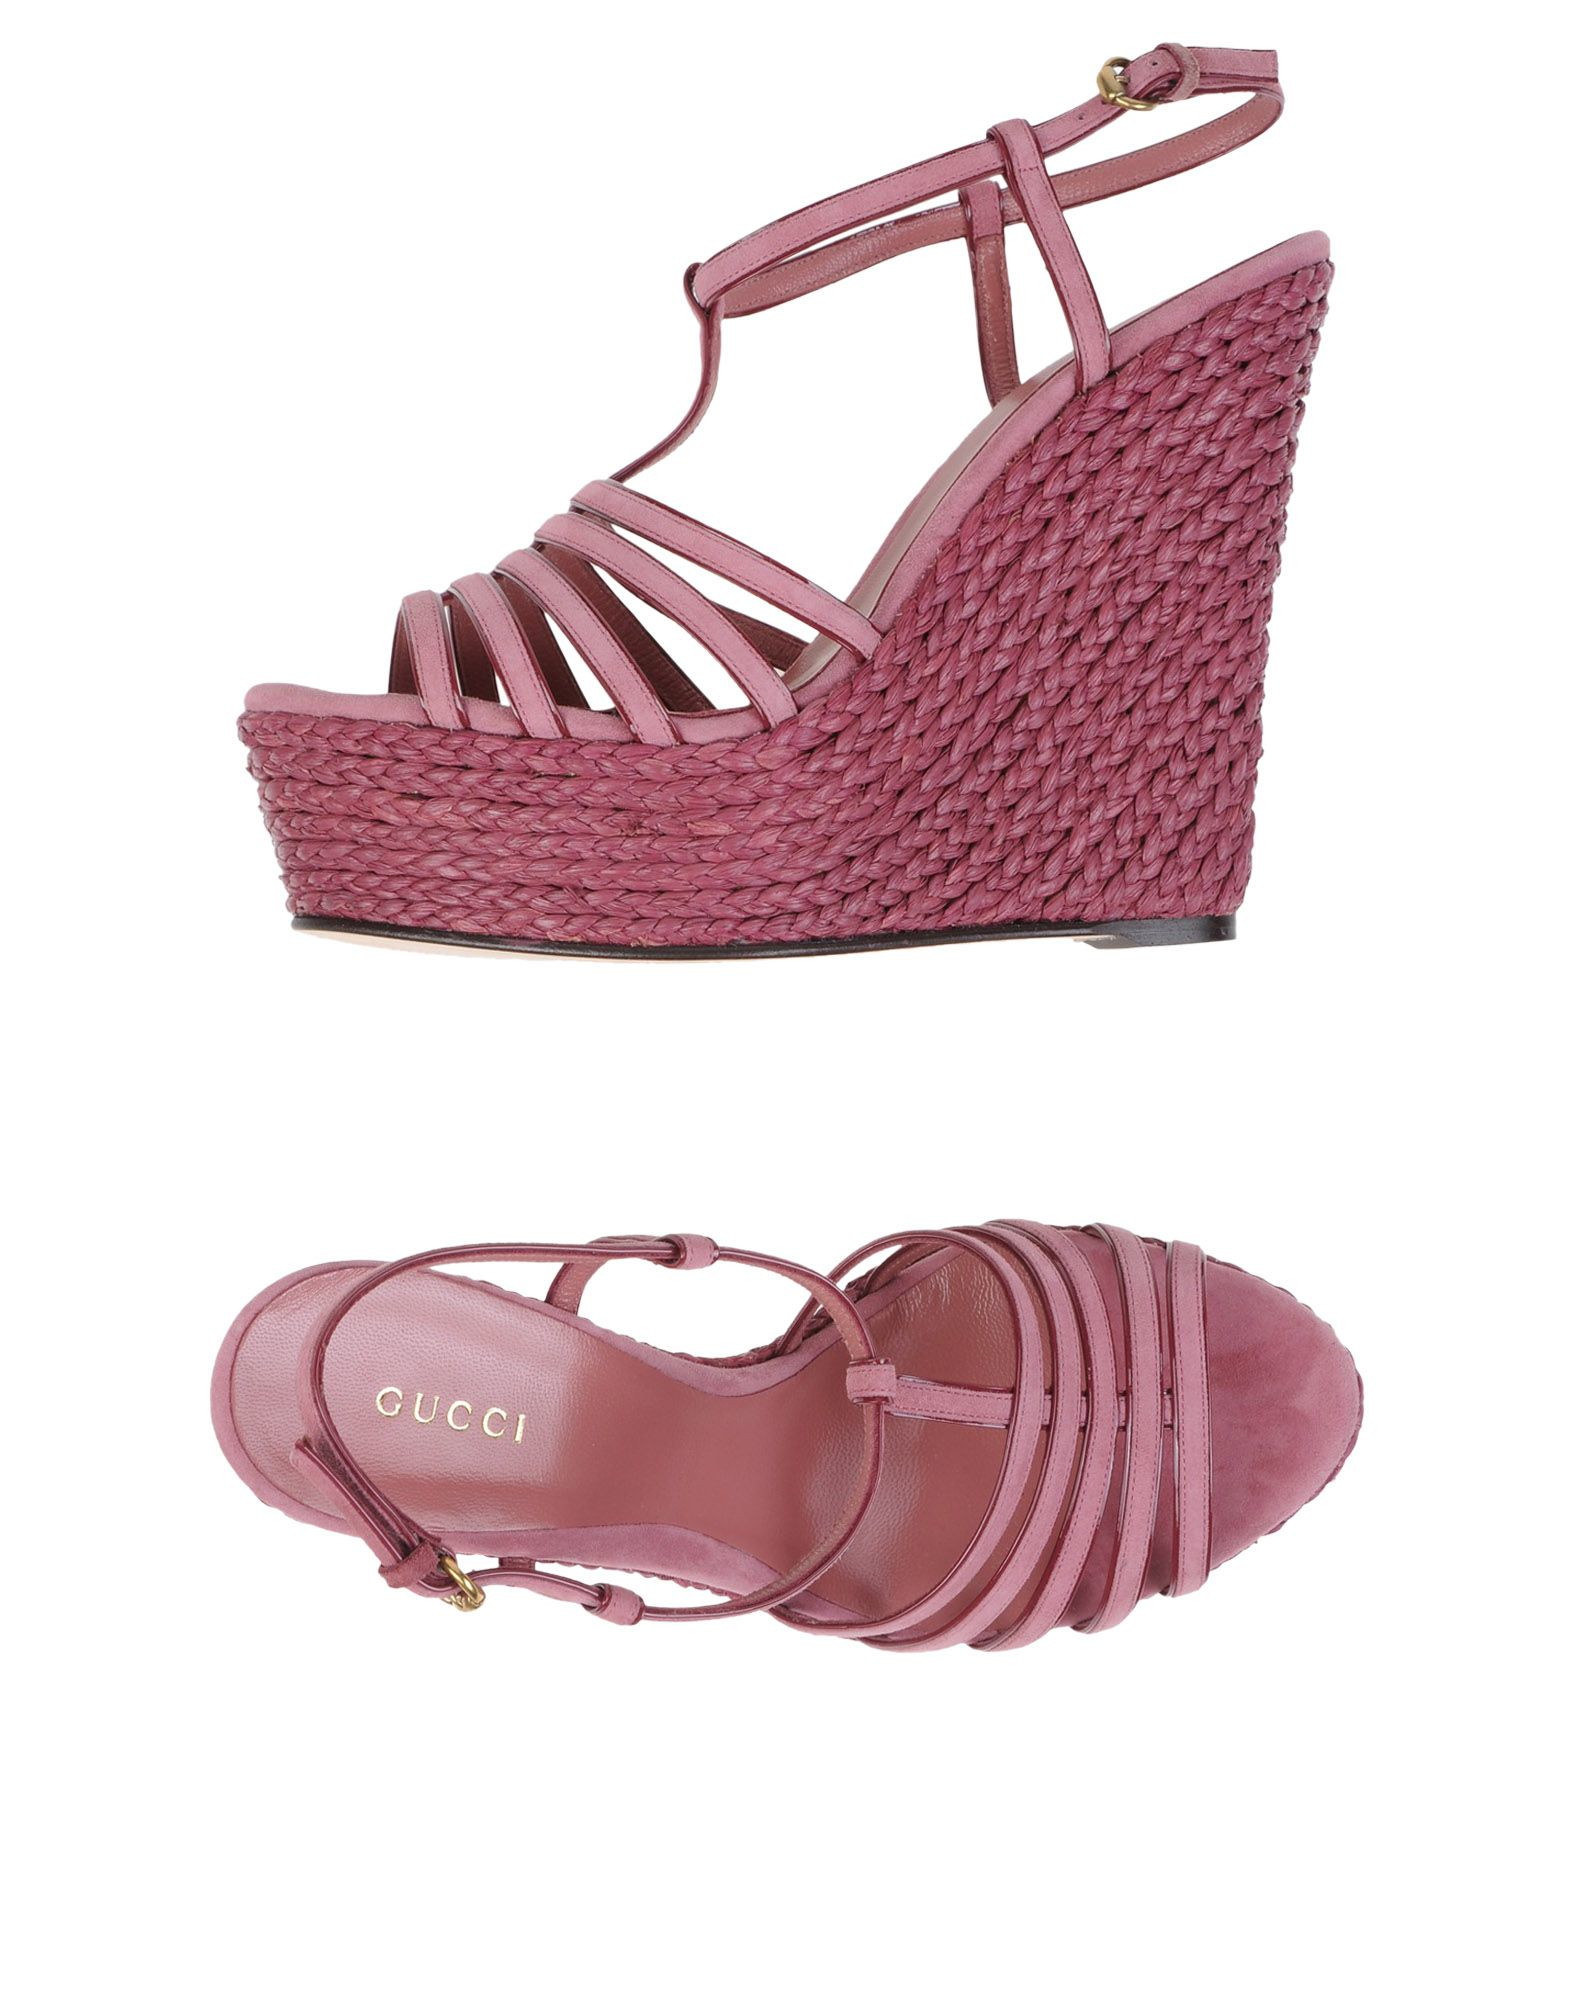 Gucci Sandals in Pink | Lyst